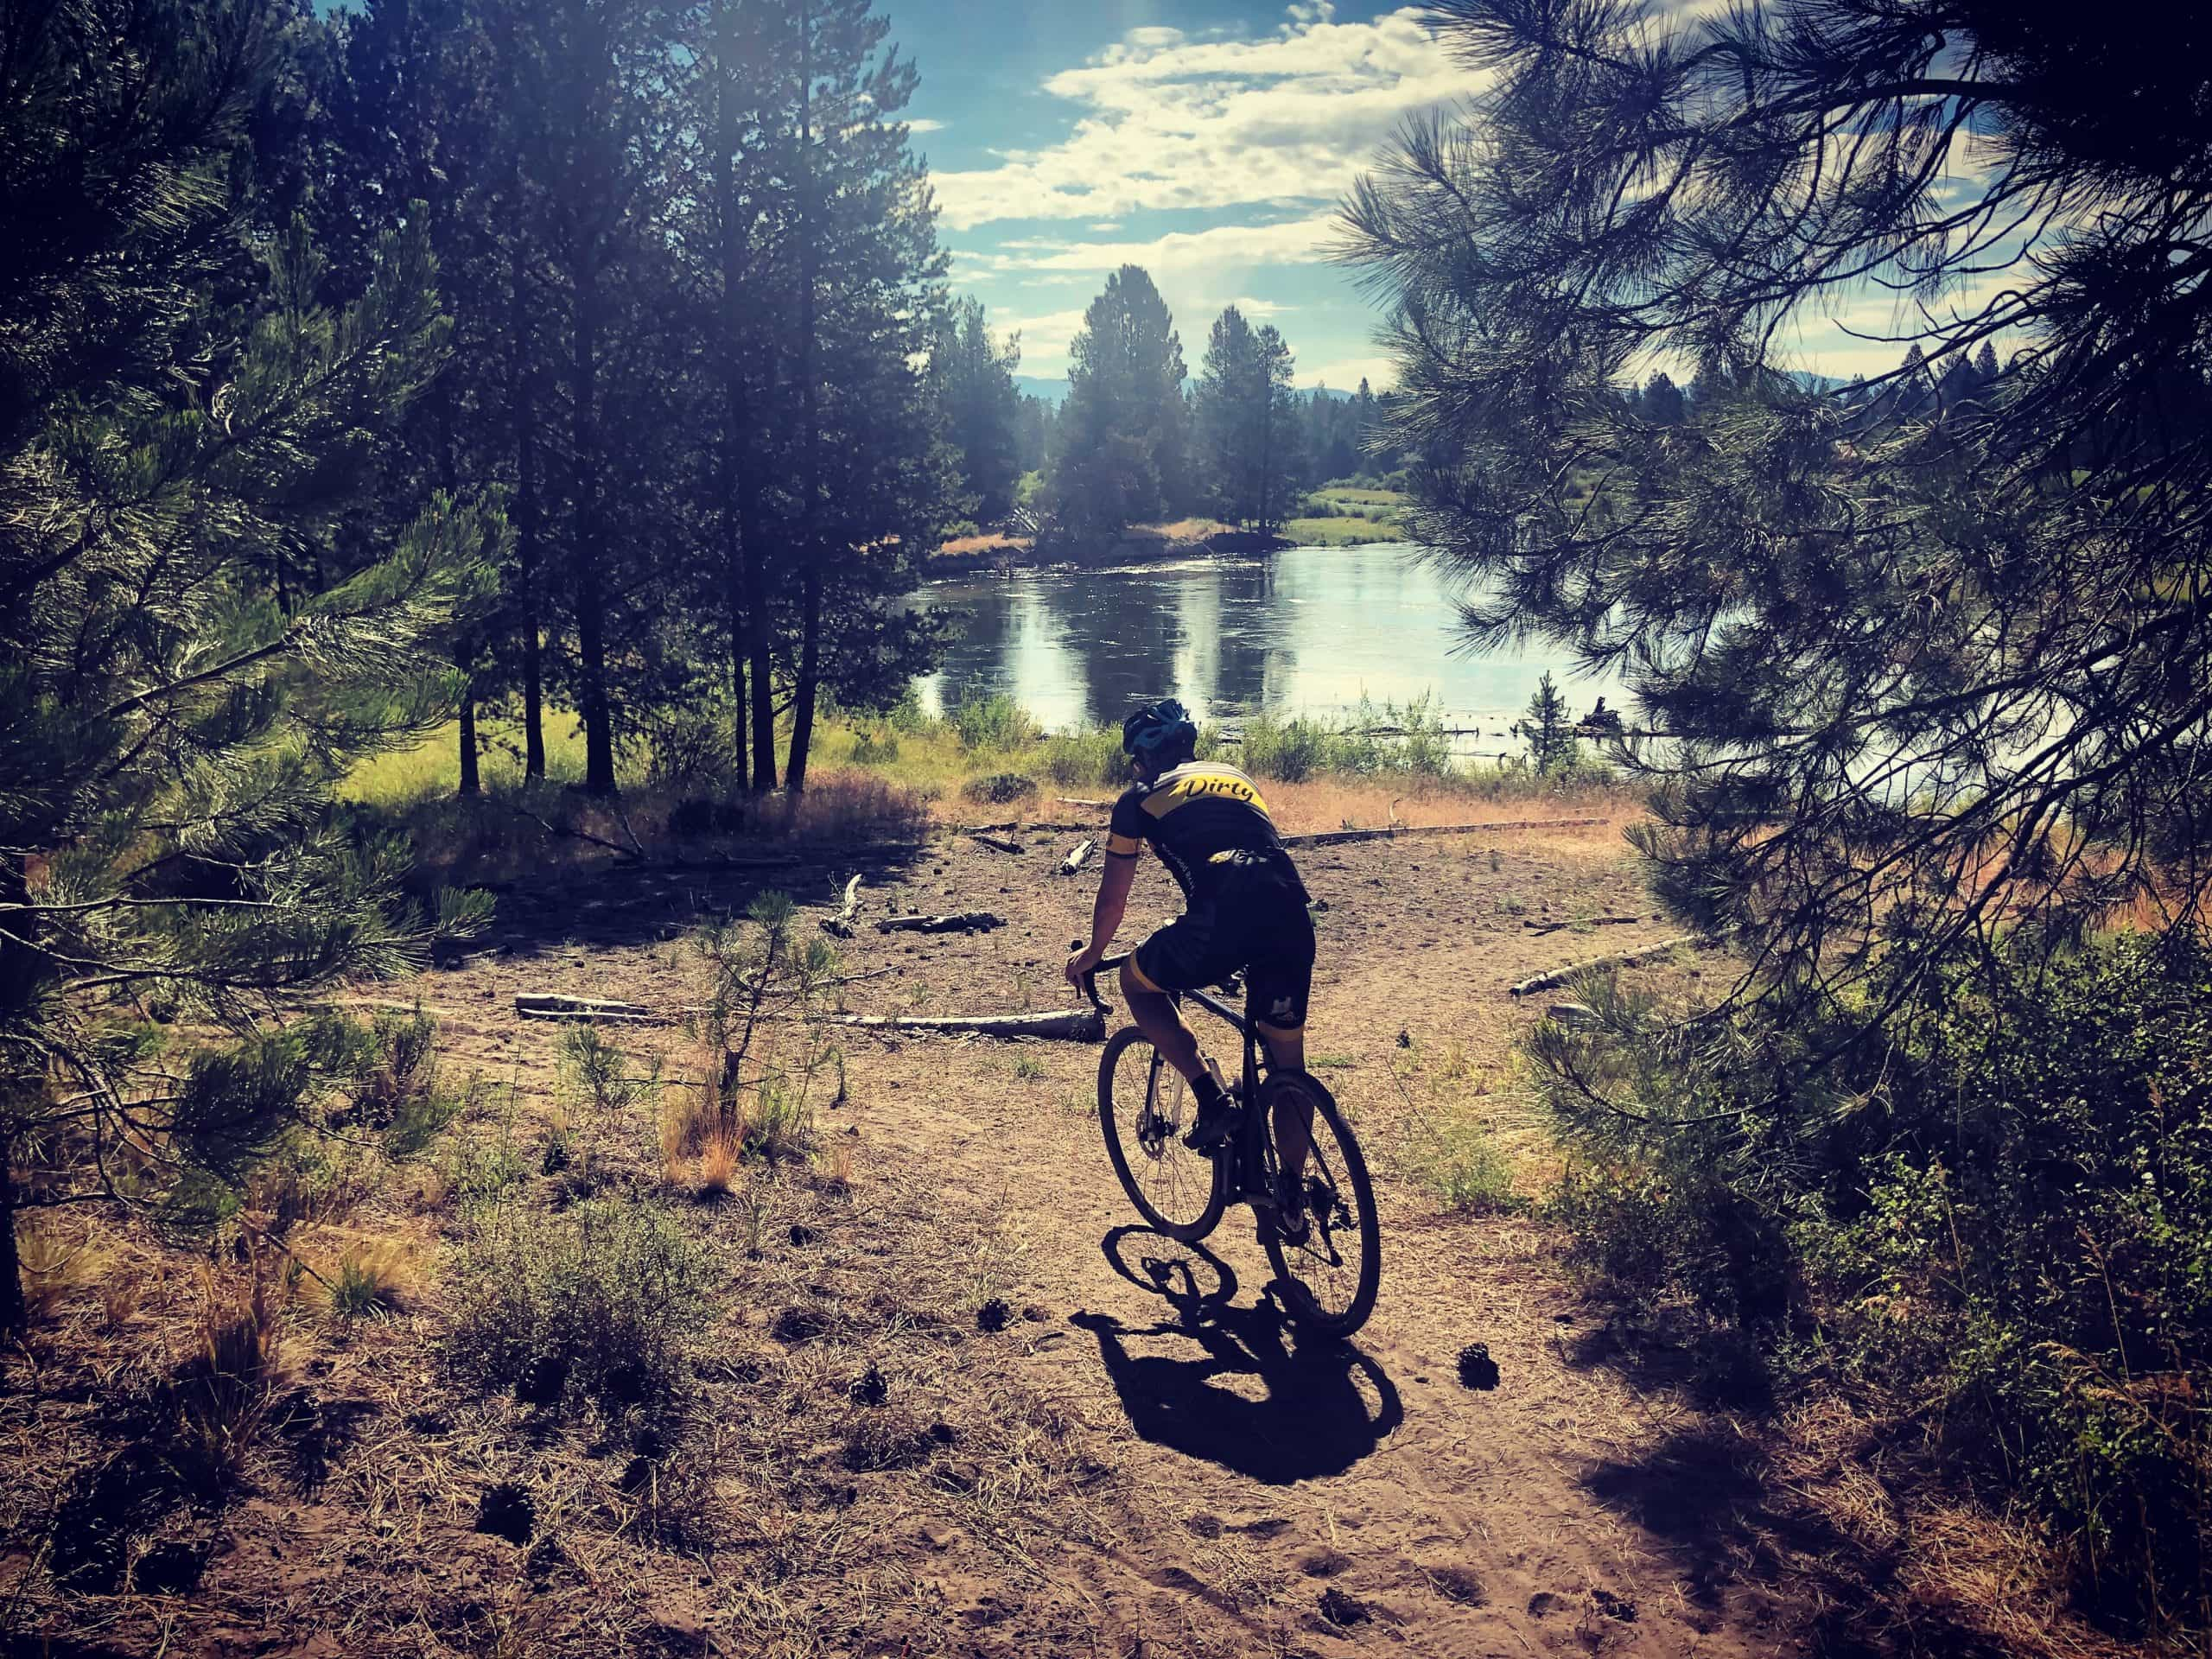 Gravel cyclist on dirt trail in LaPine State Park near Sunriver, OR.